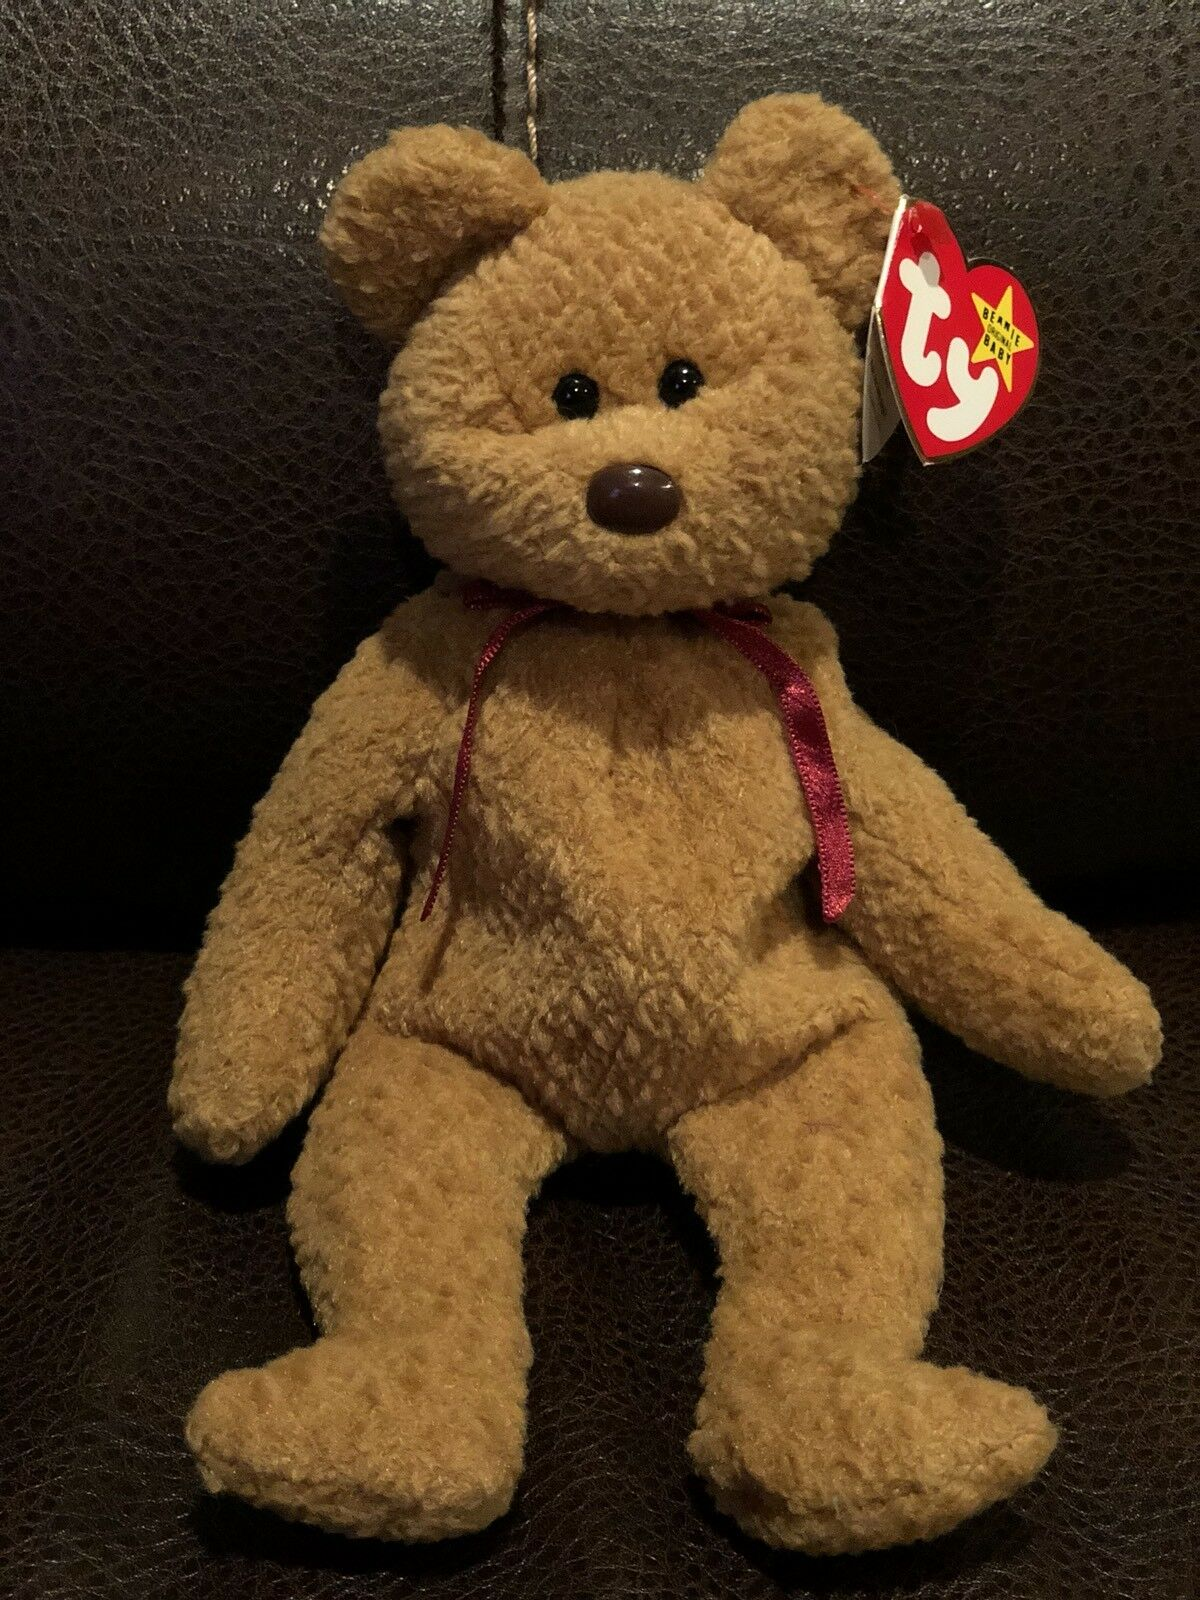 ea29f6a1a83 TY BEANIE BABY CURLY BEAR RETIRED WITH TAG ERRORS RETIRED RARE Style 4052  4e1f92. ""